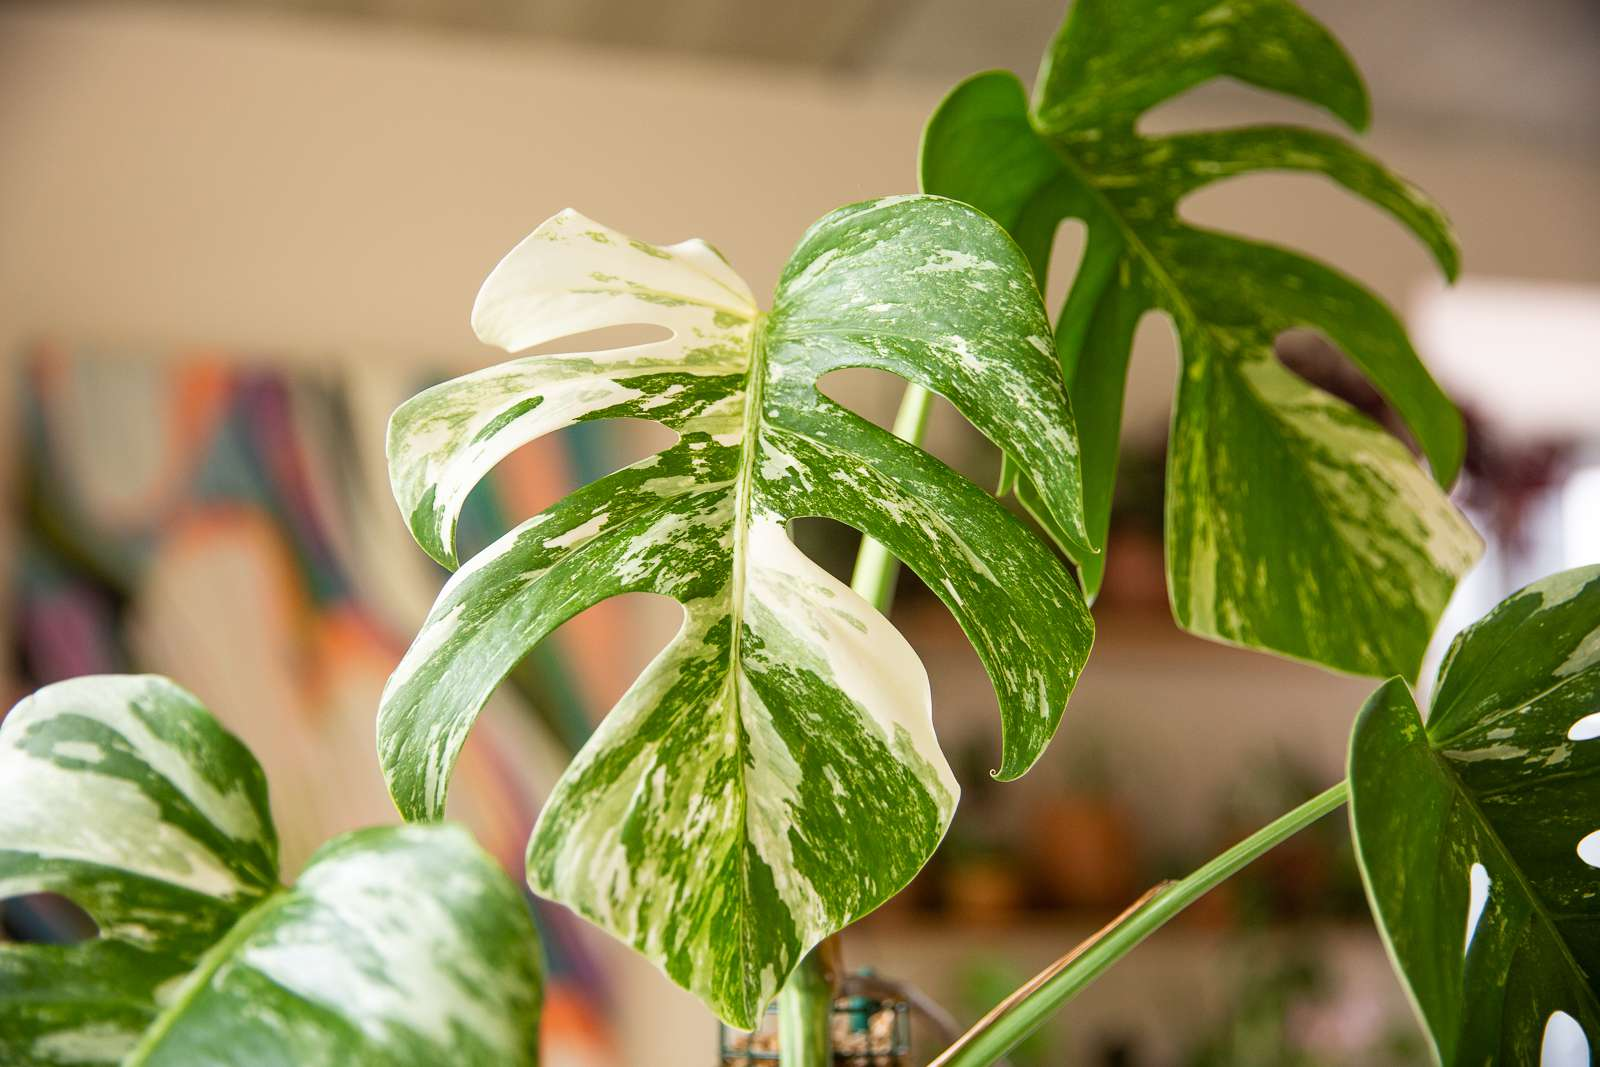 White and green variegated monstera with large swiss-cheese shaped leaves